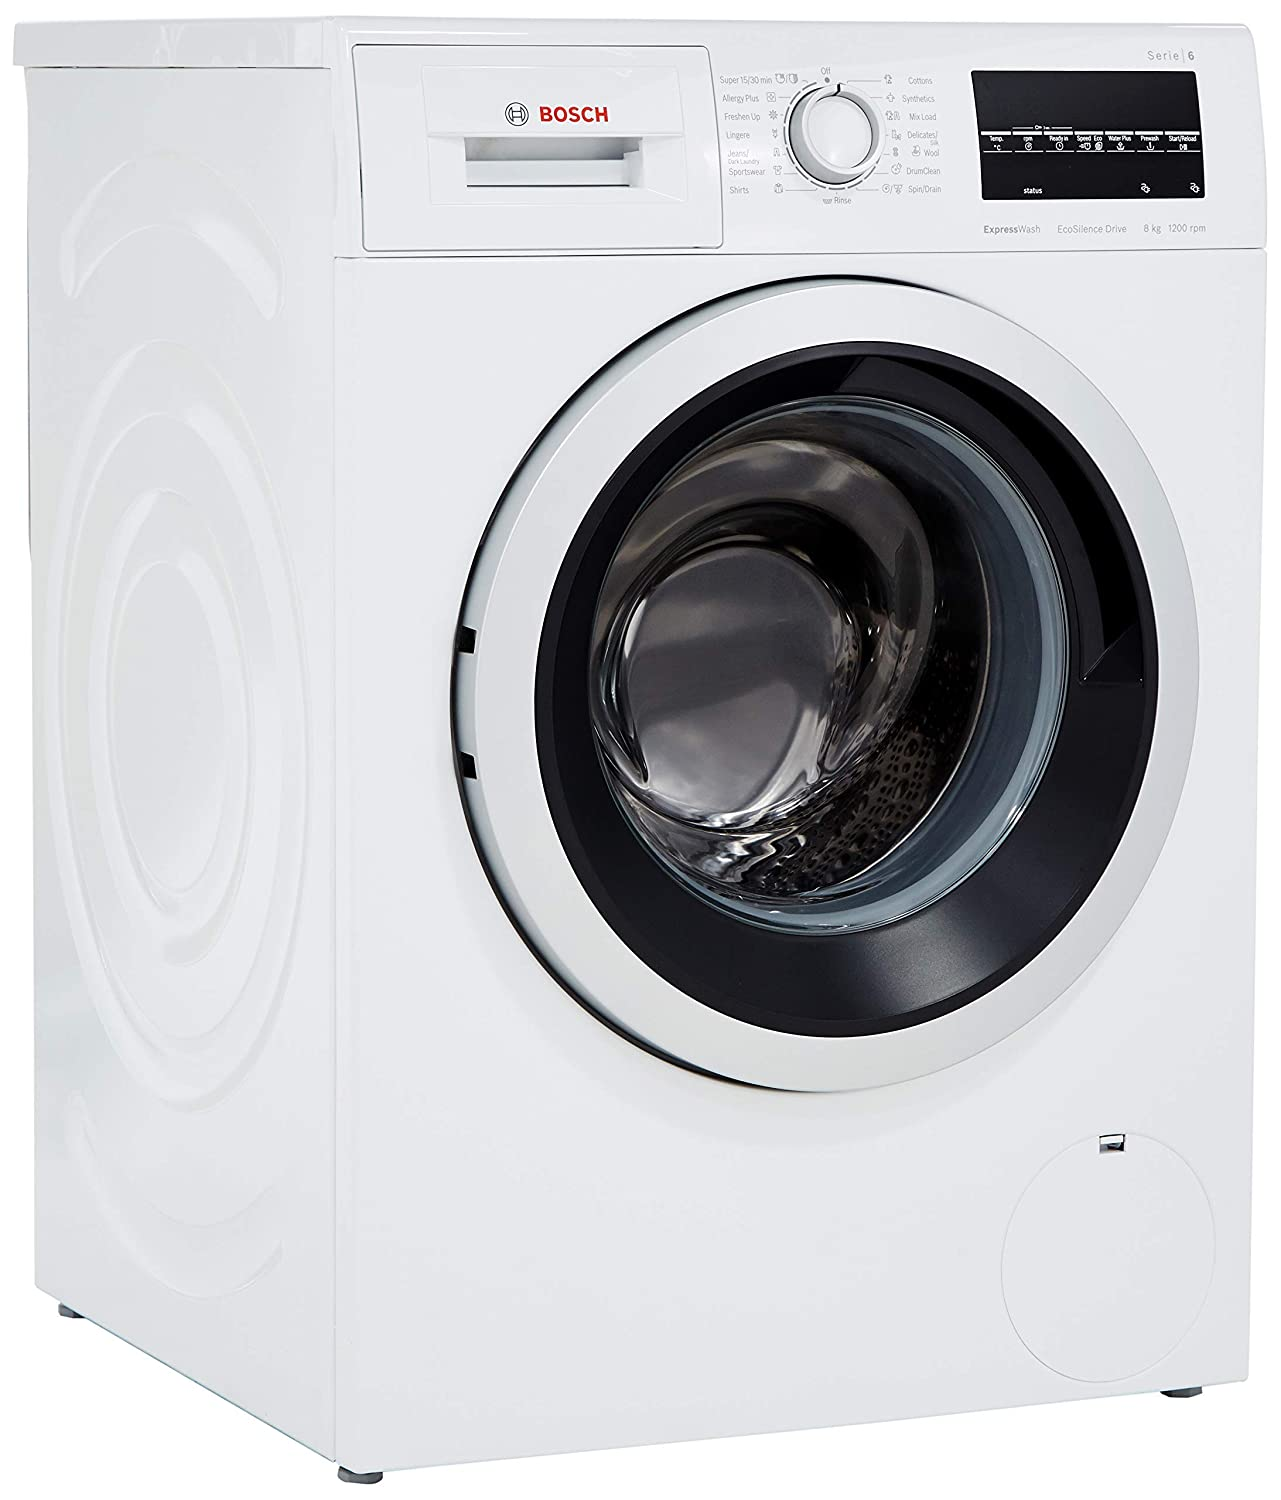 Bosch 8 kg Inverter Fully-Automatic Front Loading Washing Machine